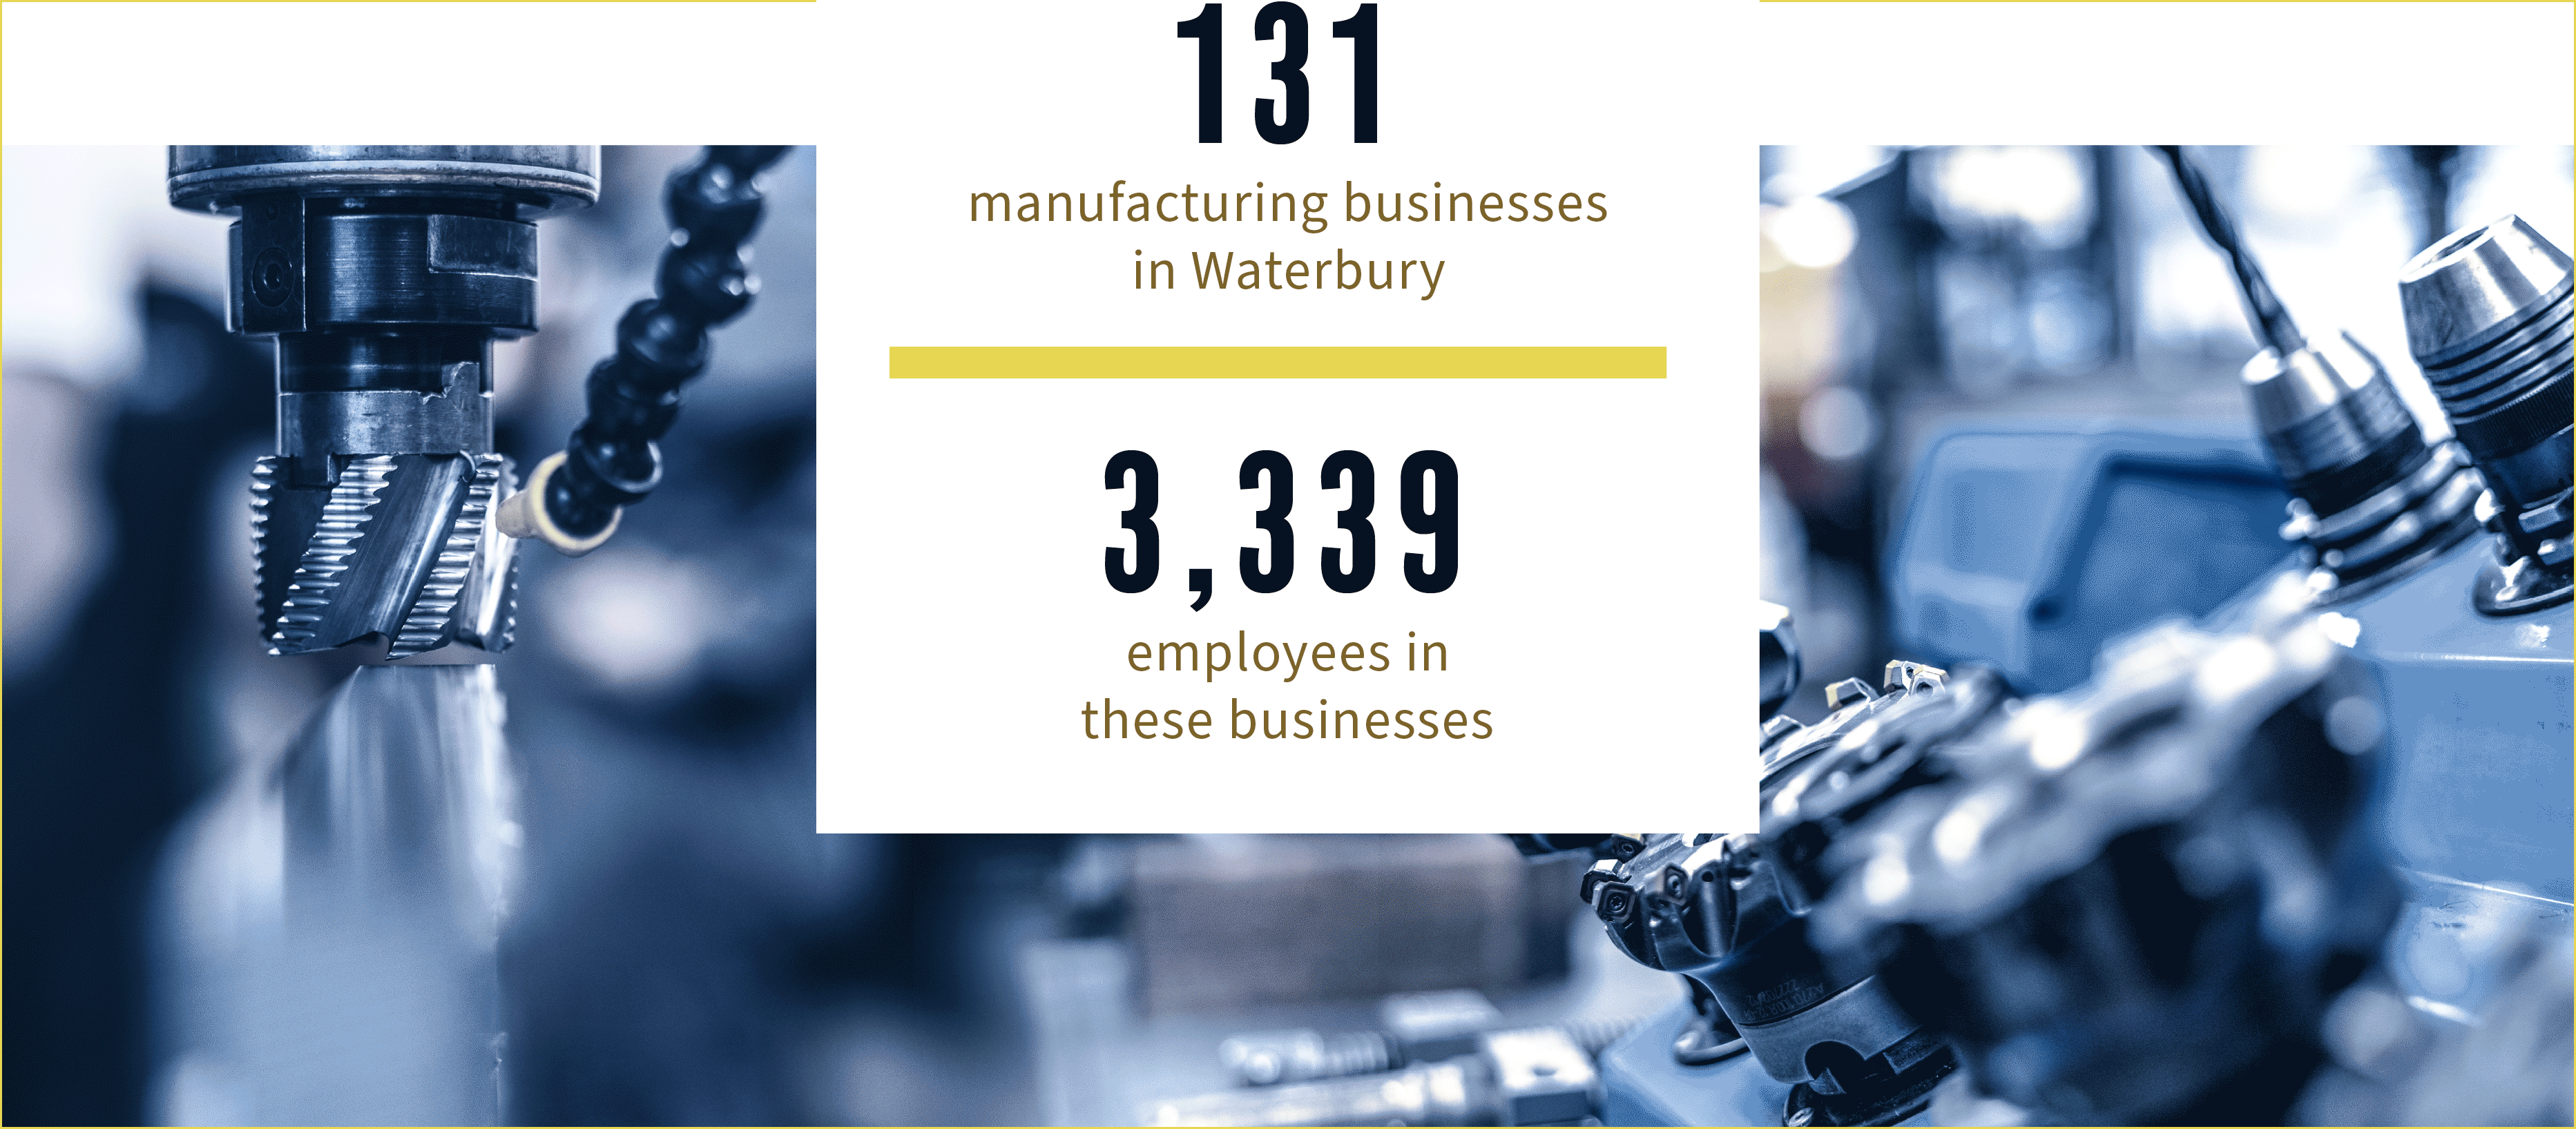 Data points on manufacturing in Waterbury CT over an image on industrial equipment